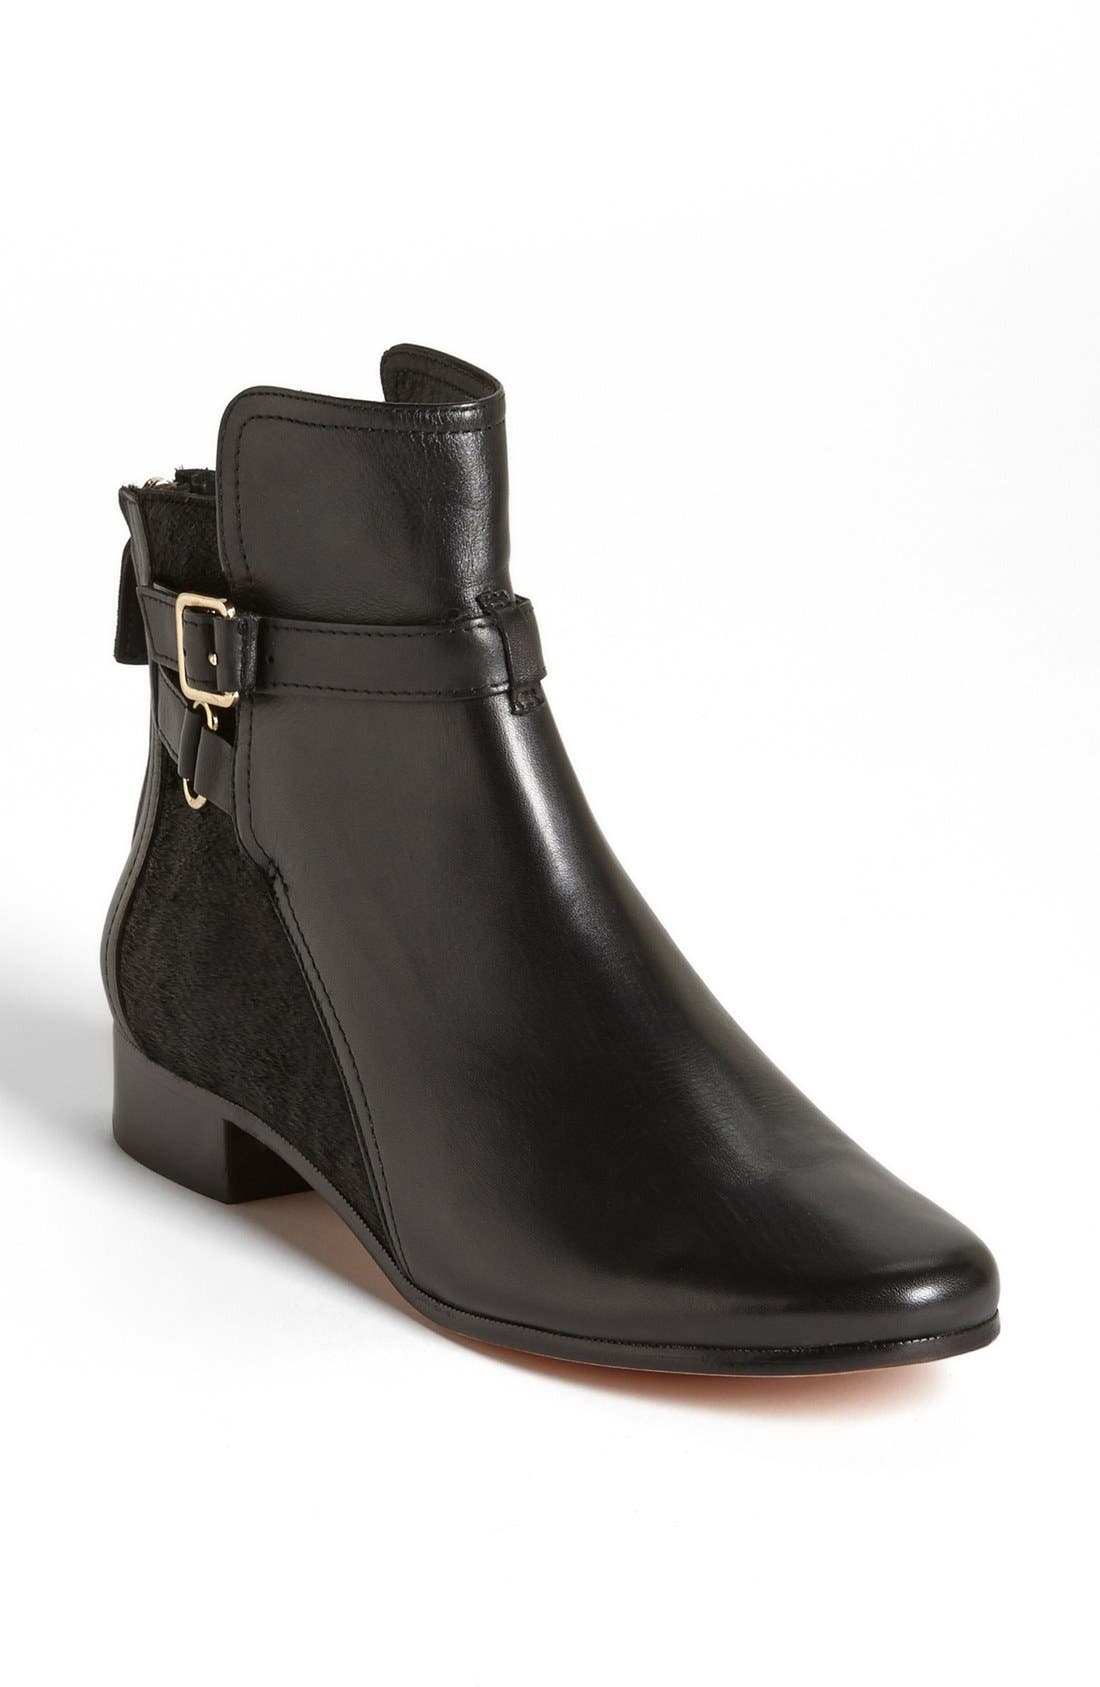 Alternate Image 1 Selected - Diane von Furstenberg 'Keith' Boot